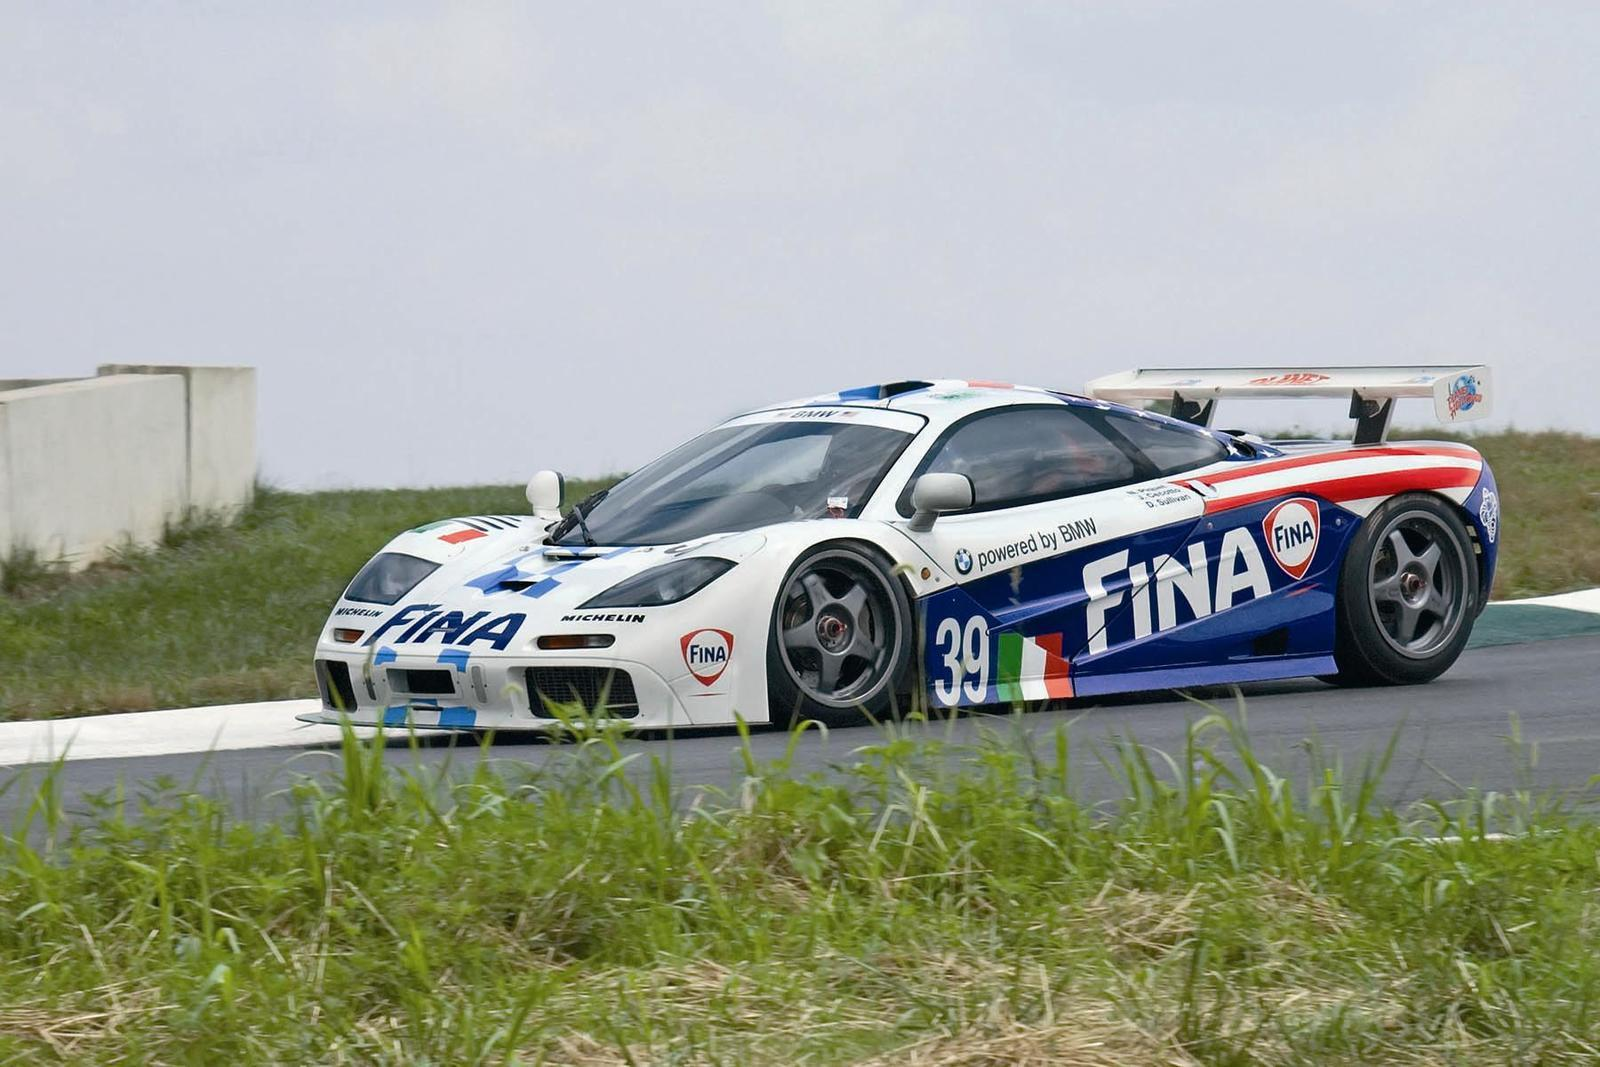 BMW Brings Endurance Racing To Amelia Island Concours D ...